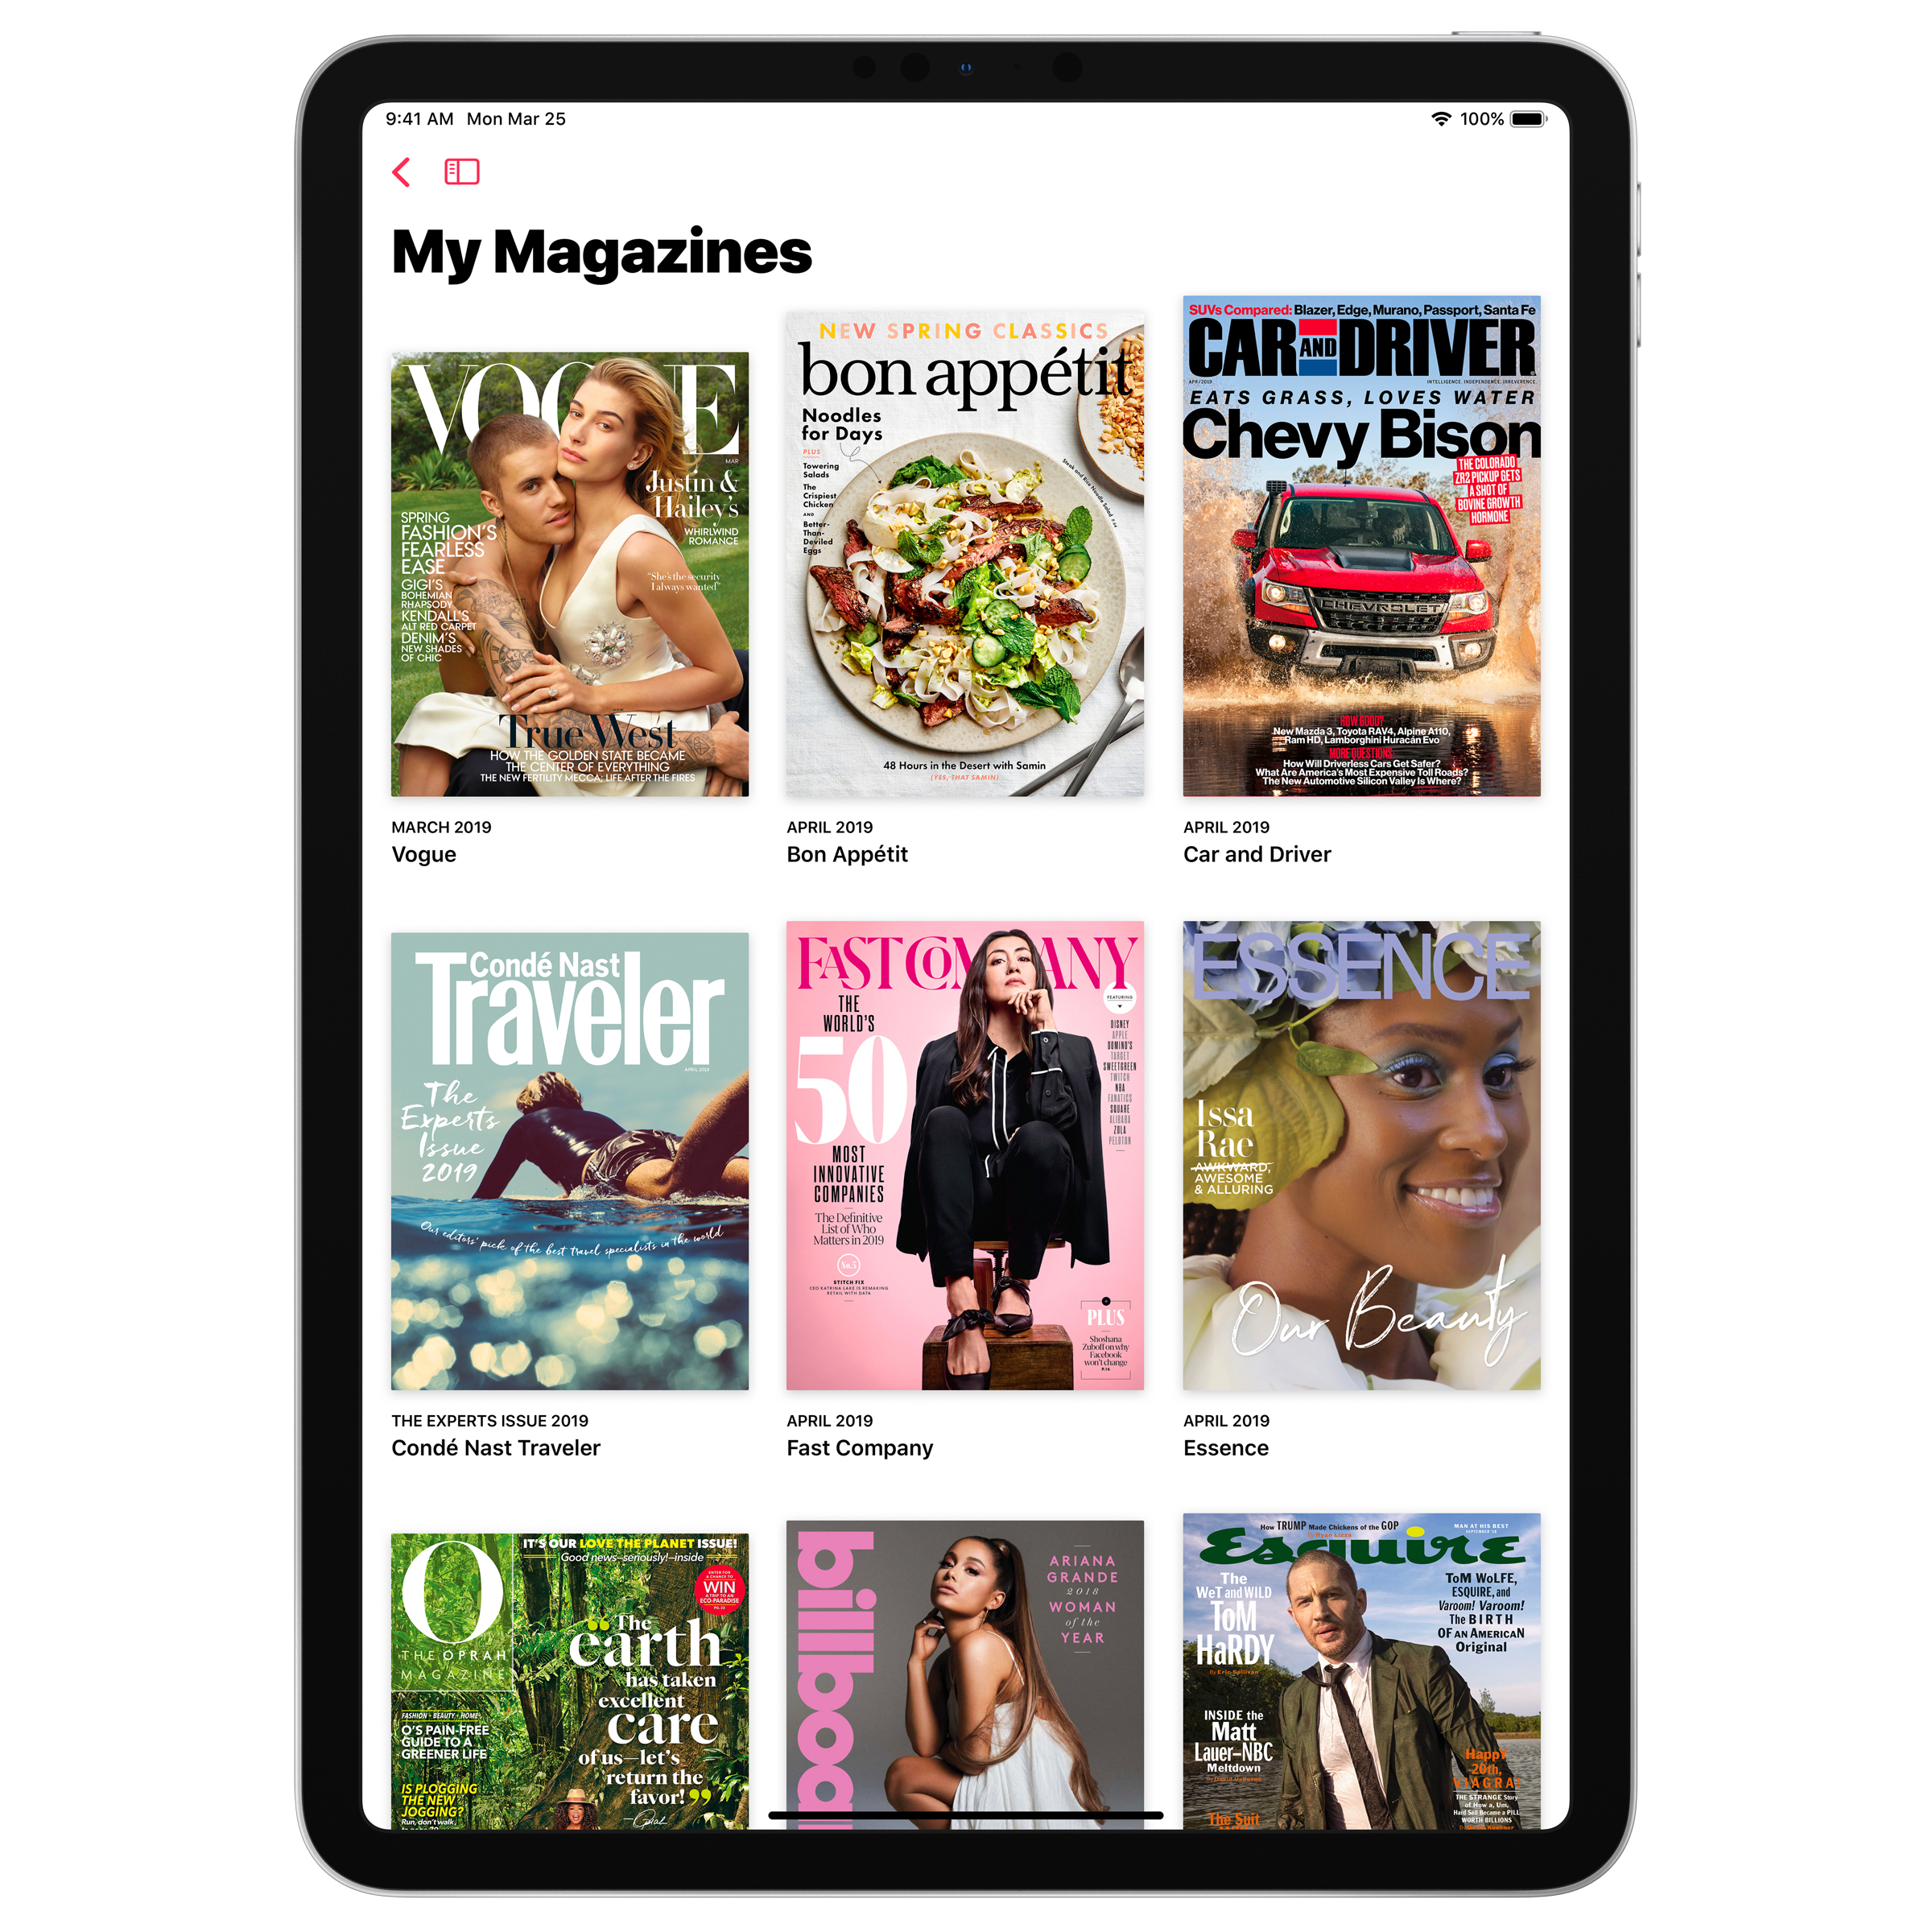 Apple Launches Apple News+, an Immersive Magazine and News Reading